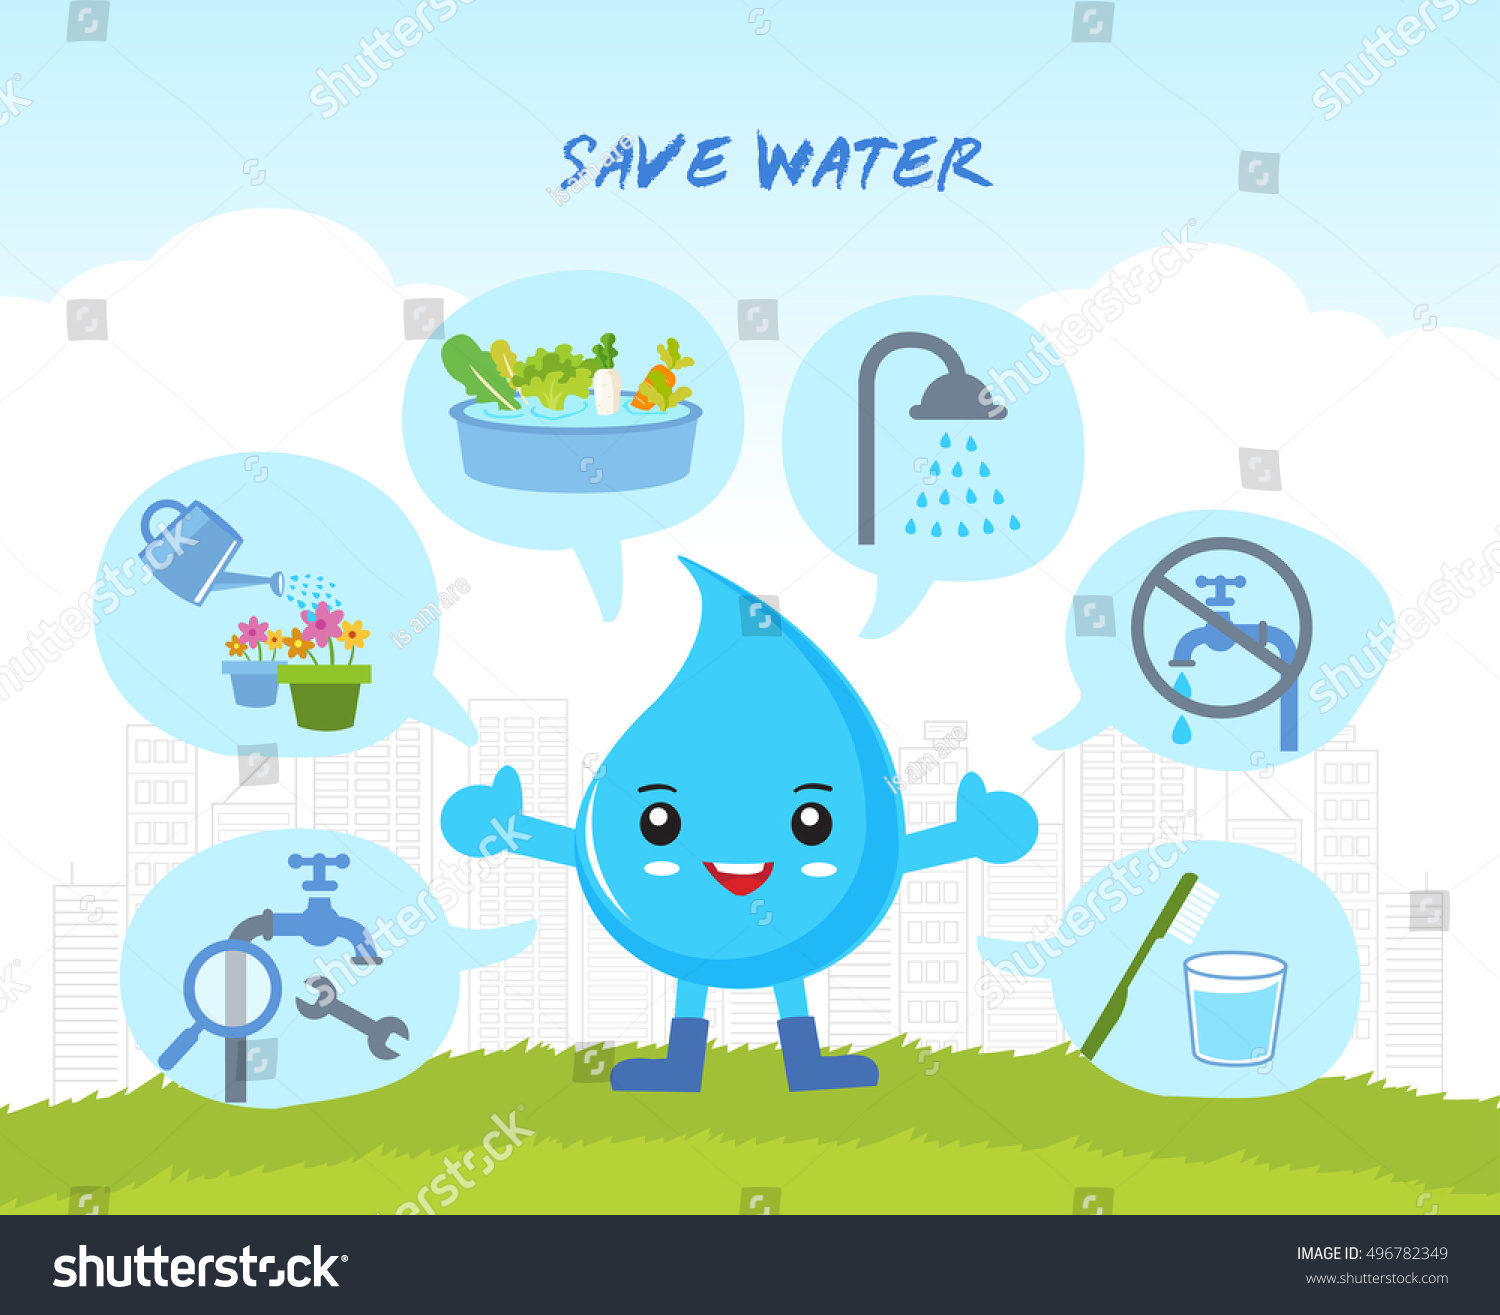 Water Pollution Cartoon Images For Kids